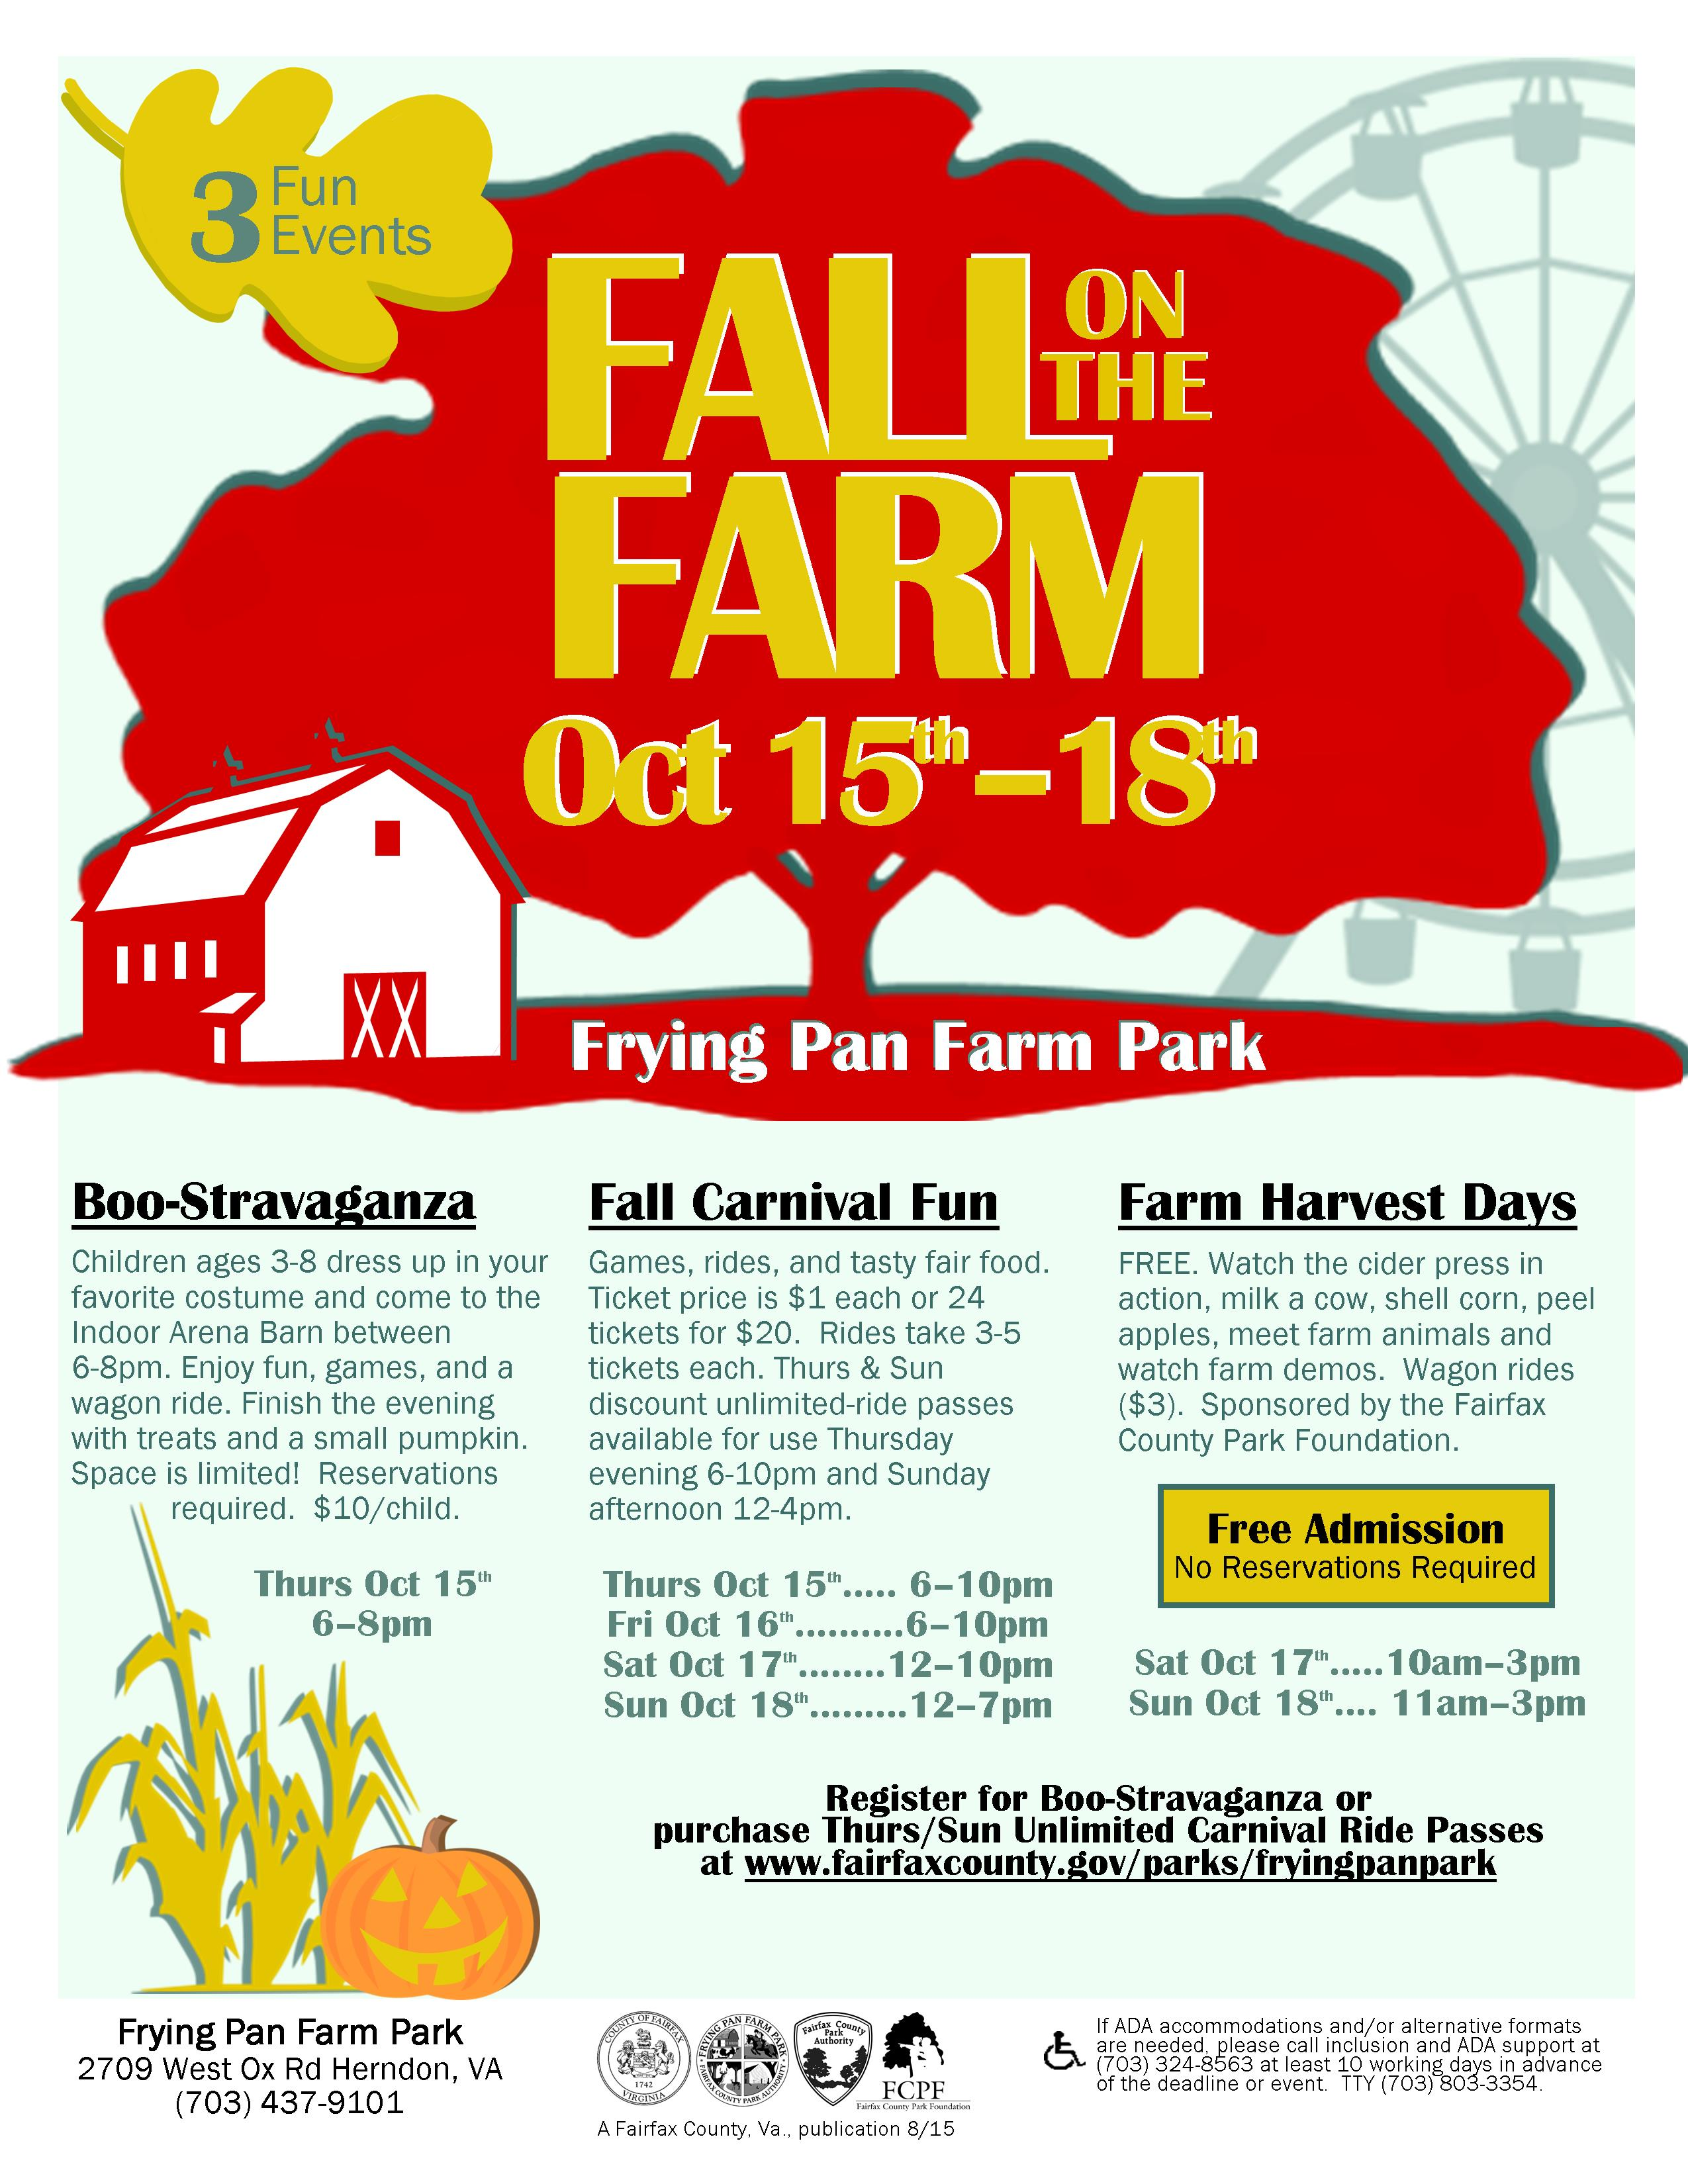 Farm Harvest Days 2015